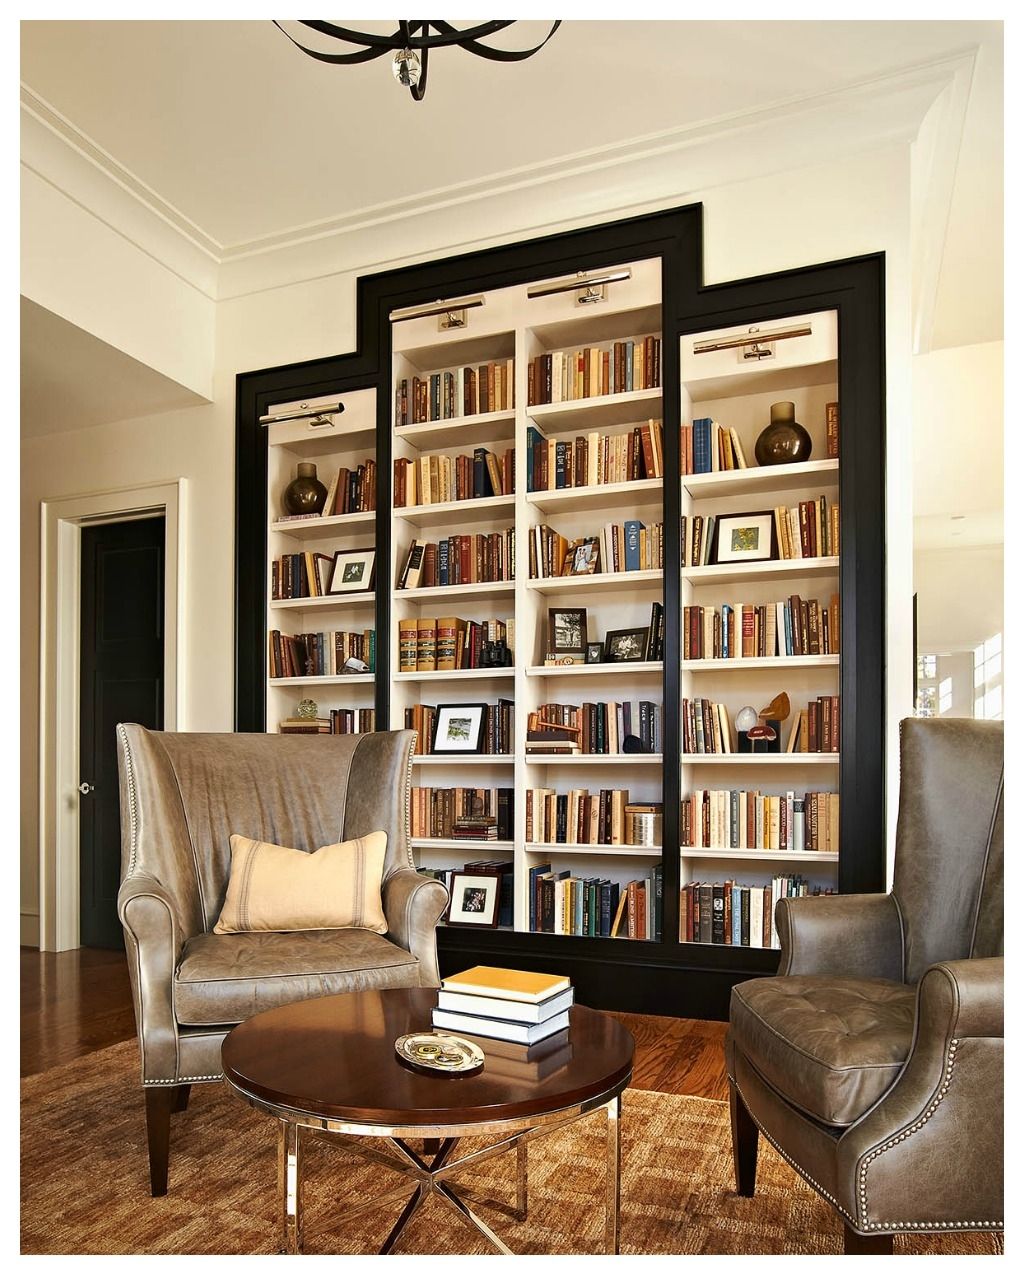 Bookshelves Study At Ncstate Chancellors House Design Lines Ltd In Book Cabinet Design (#5 of 15)